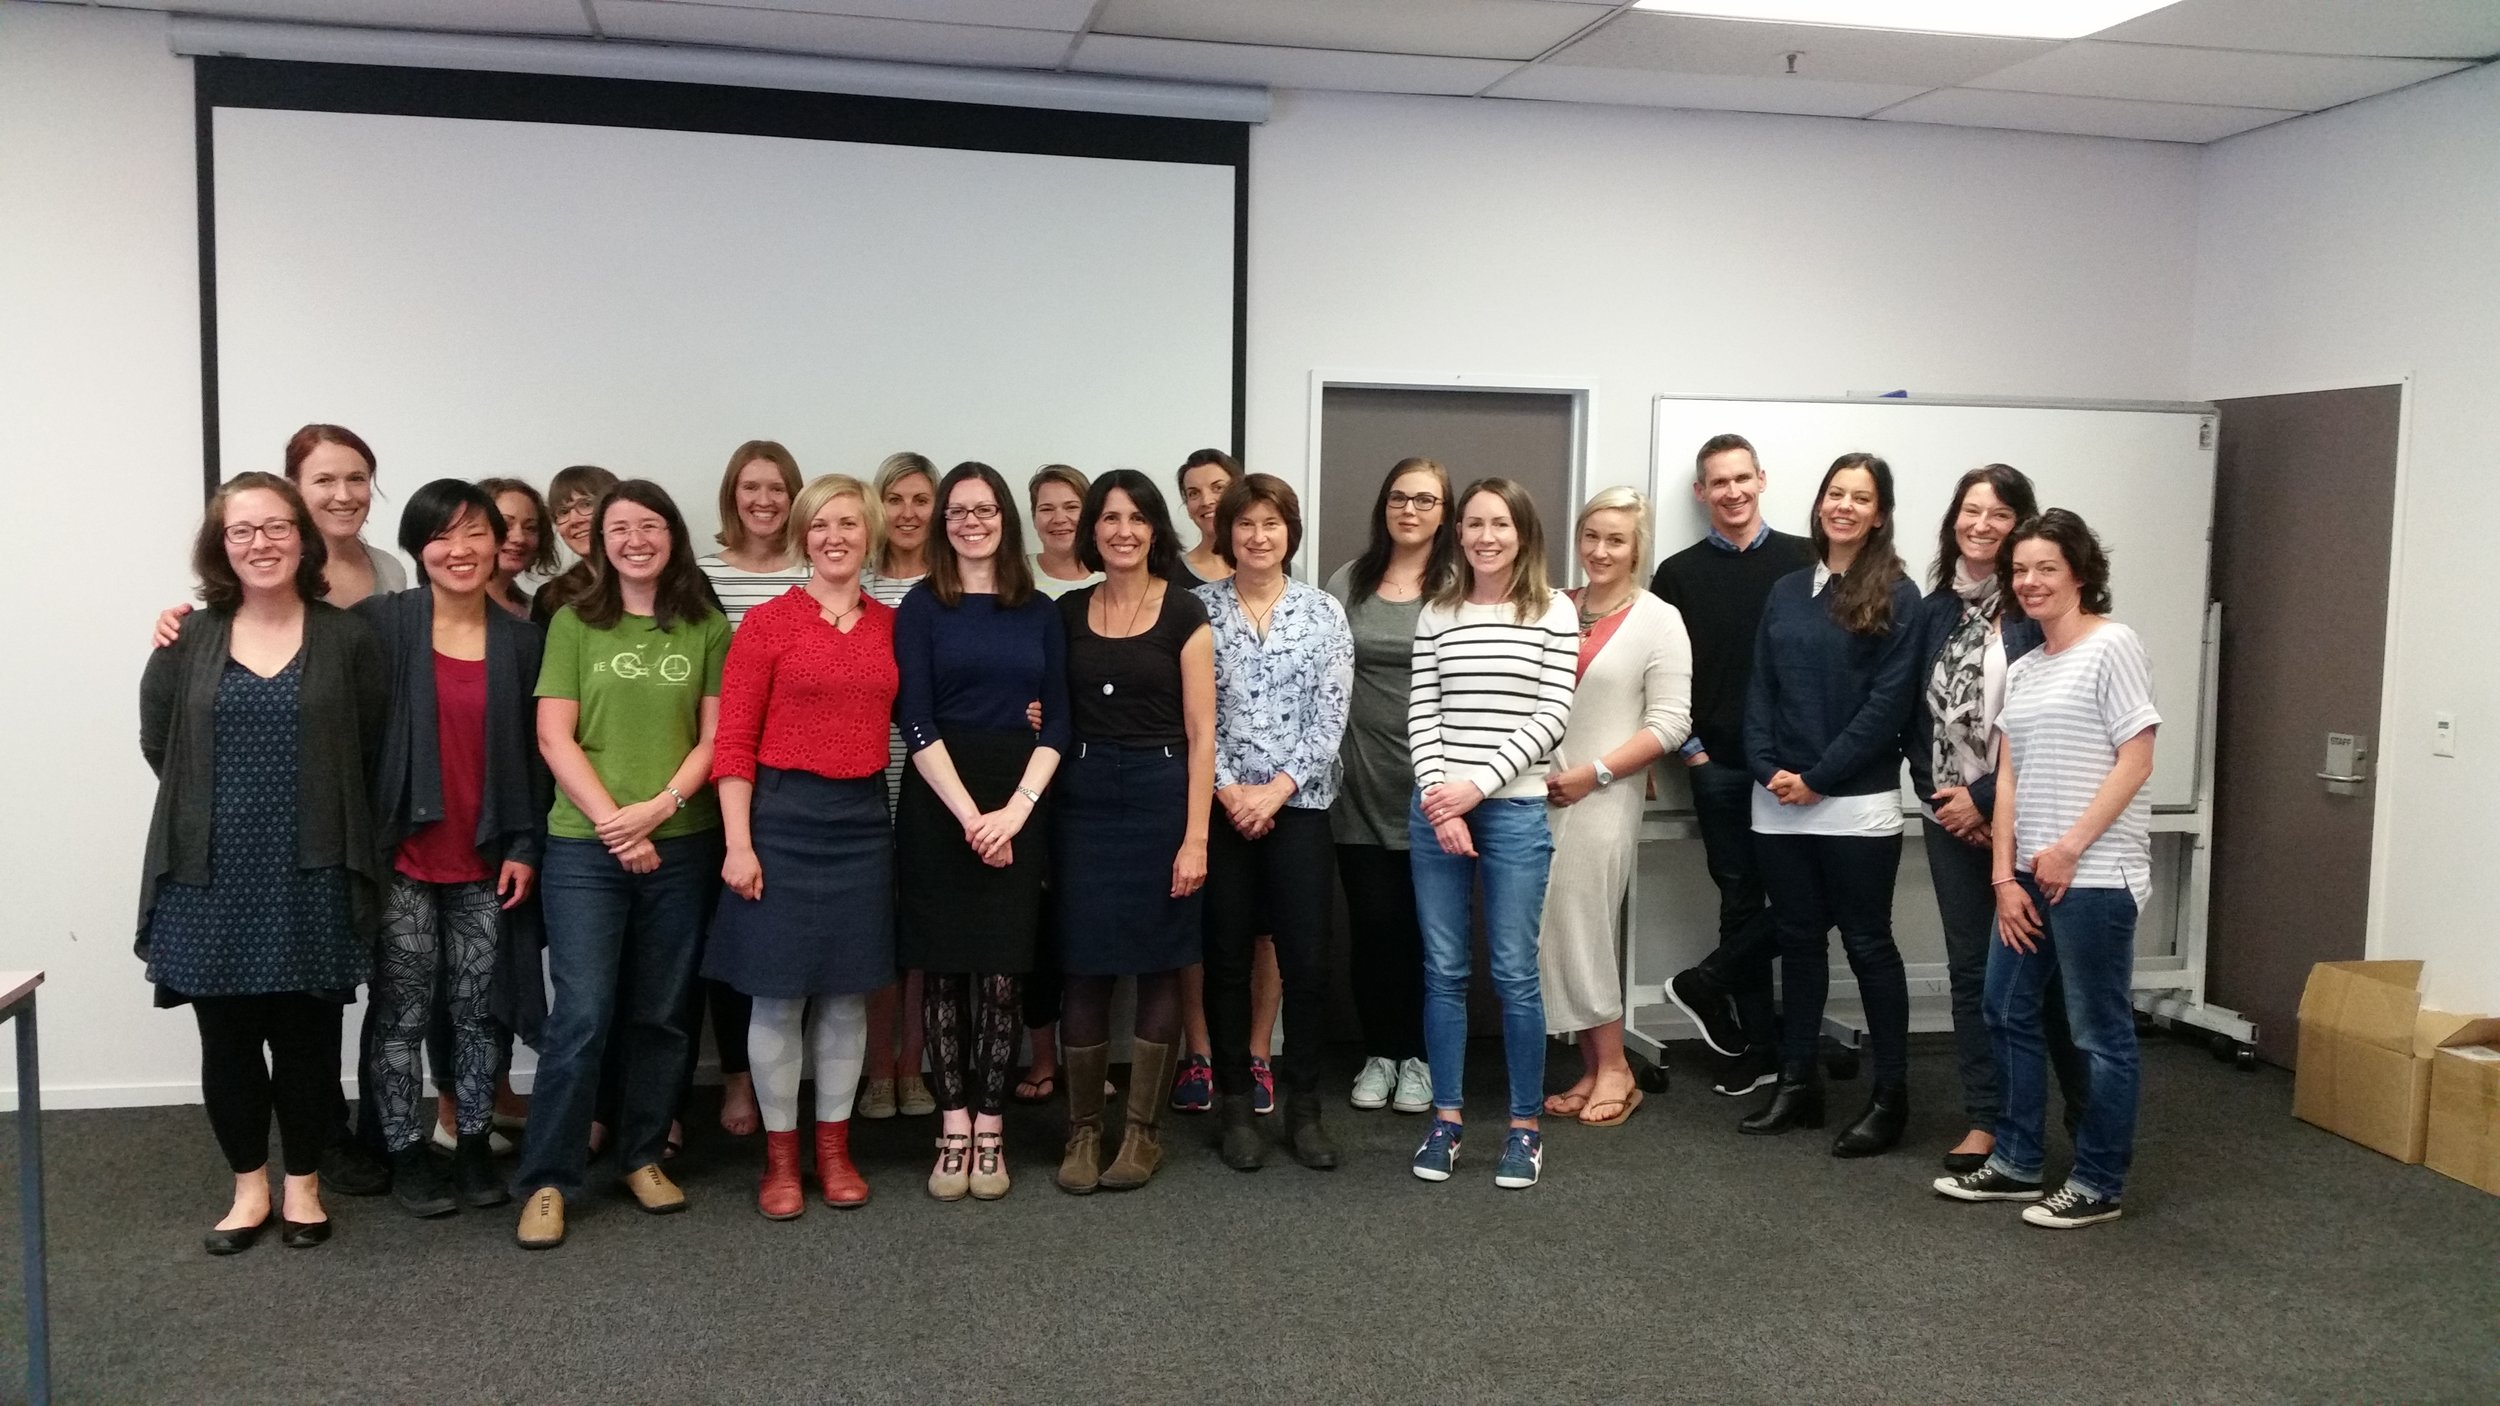 With co-presenters' Dr Anastasia Boulais, Dr Lara Briden and the lovely attendees.        (Photo Credit: Jamie Scott).